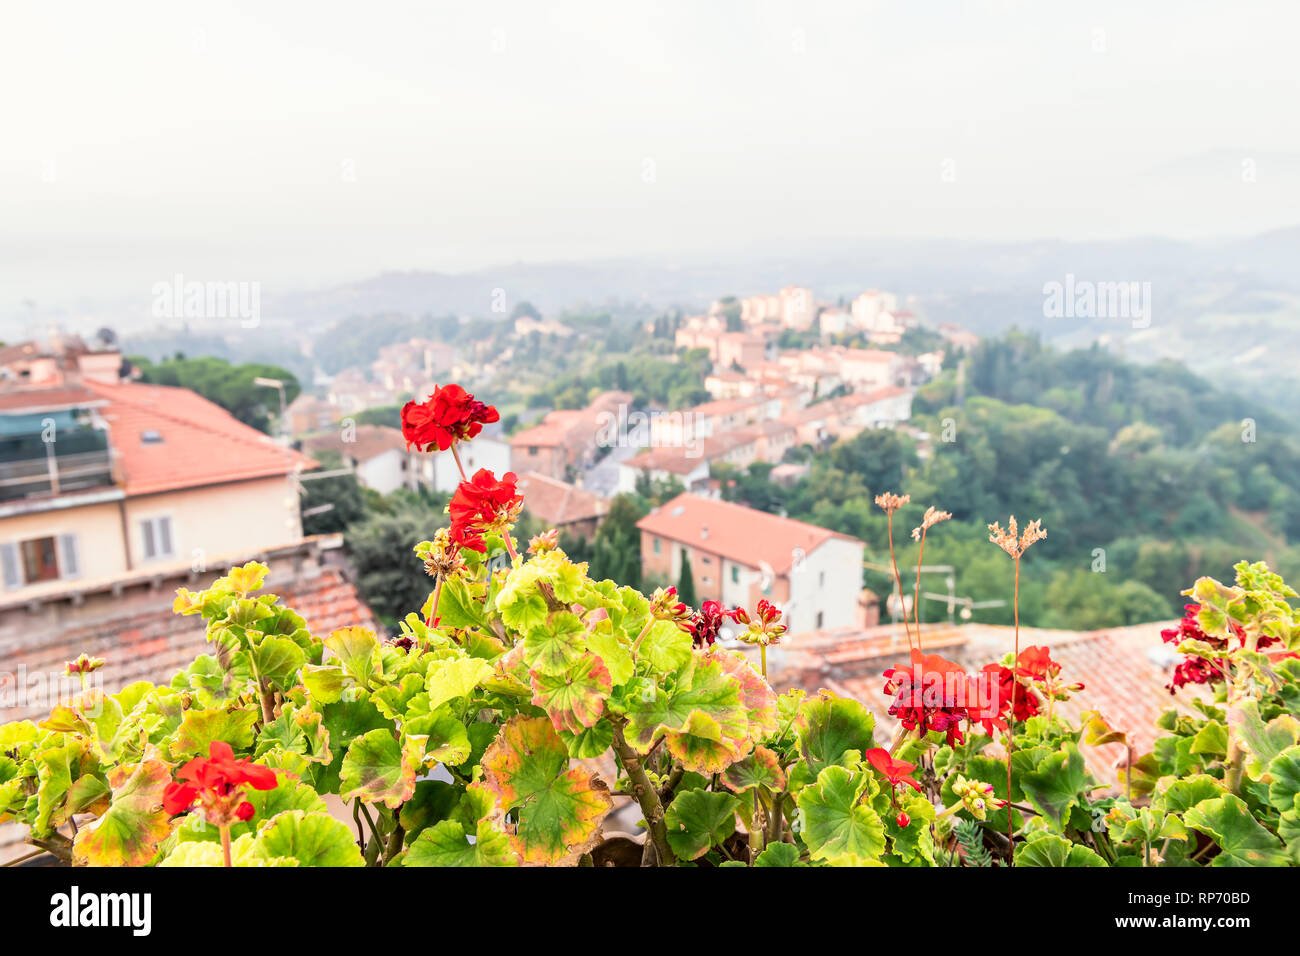 Chiusi Scalo houses buildings in Umbria, Italy or Tuscany with town cityscape and focus on red geranium flowers in garden foreground Stock Photo